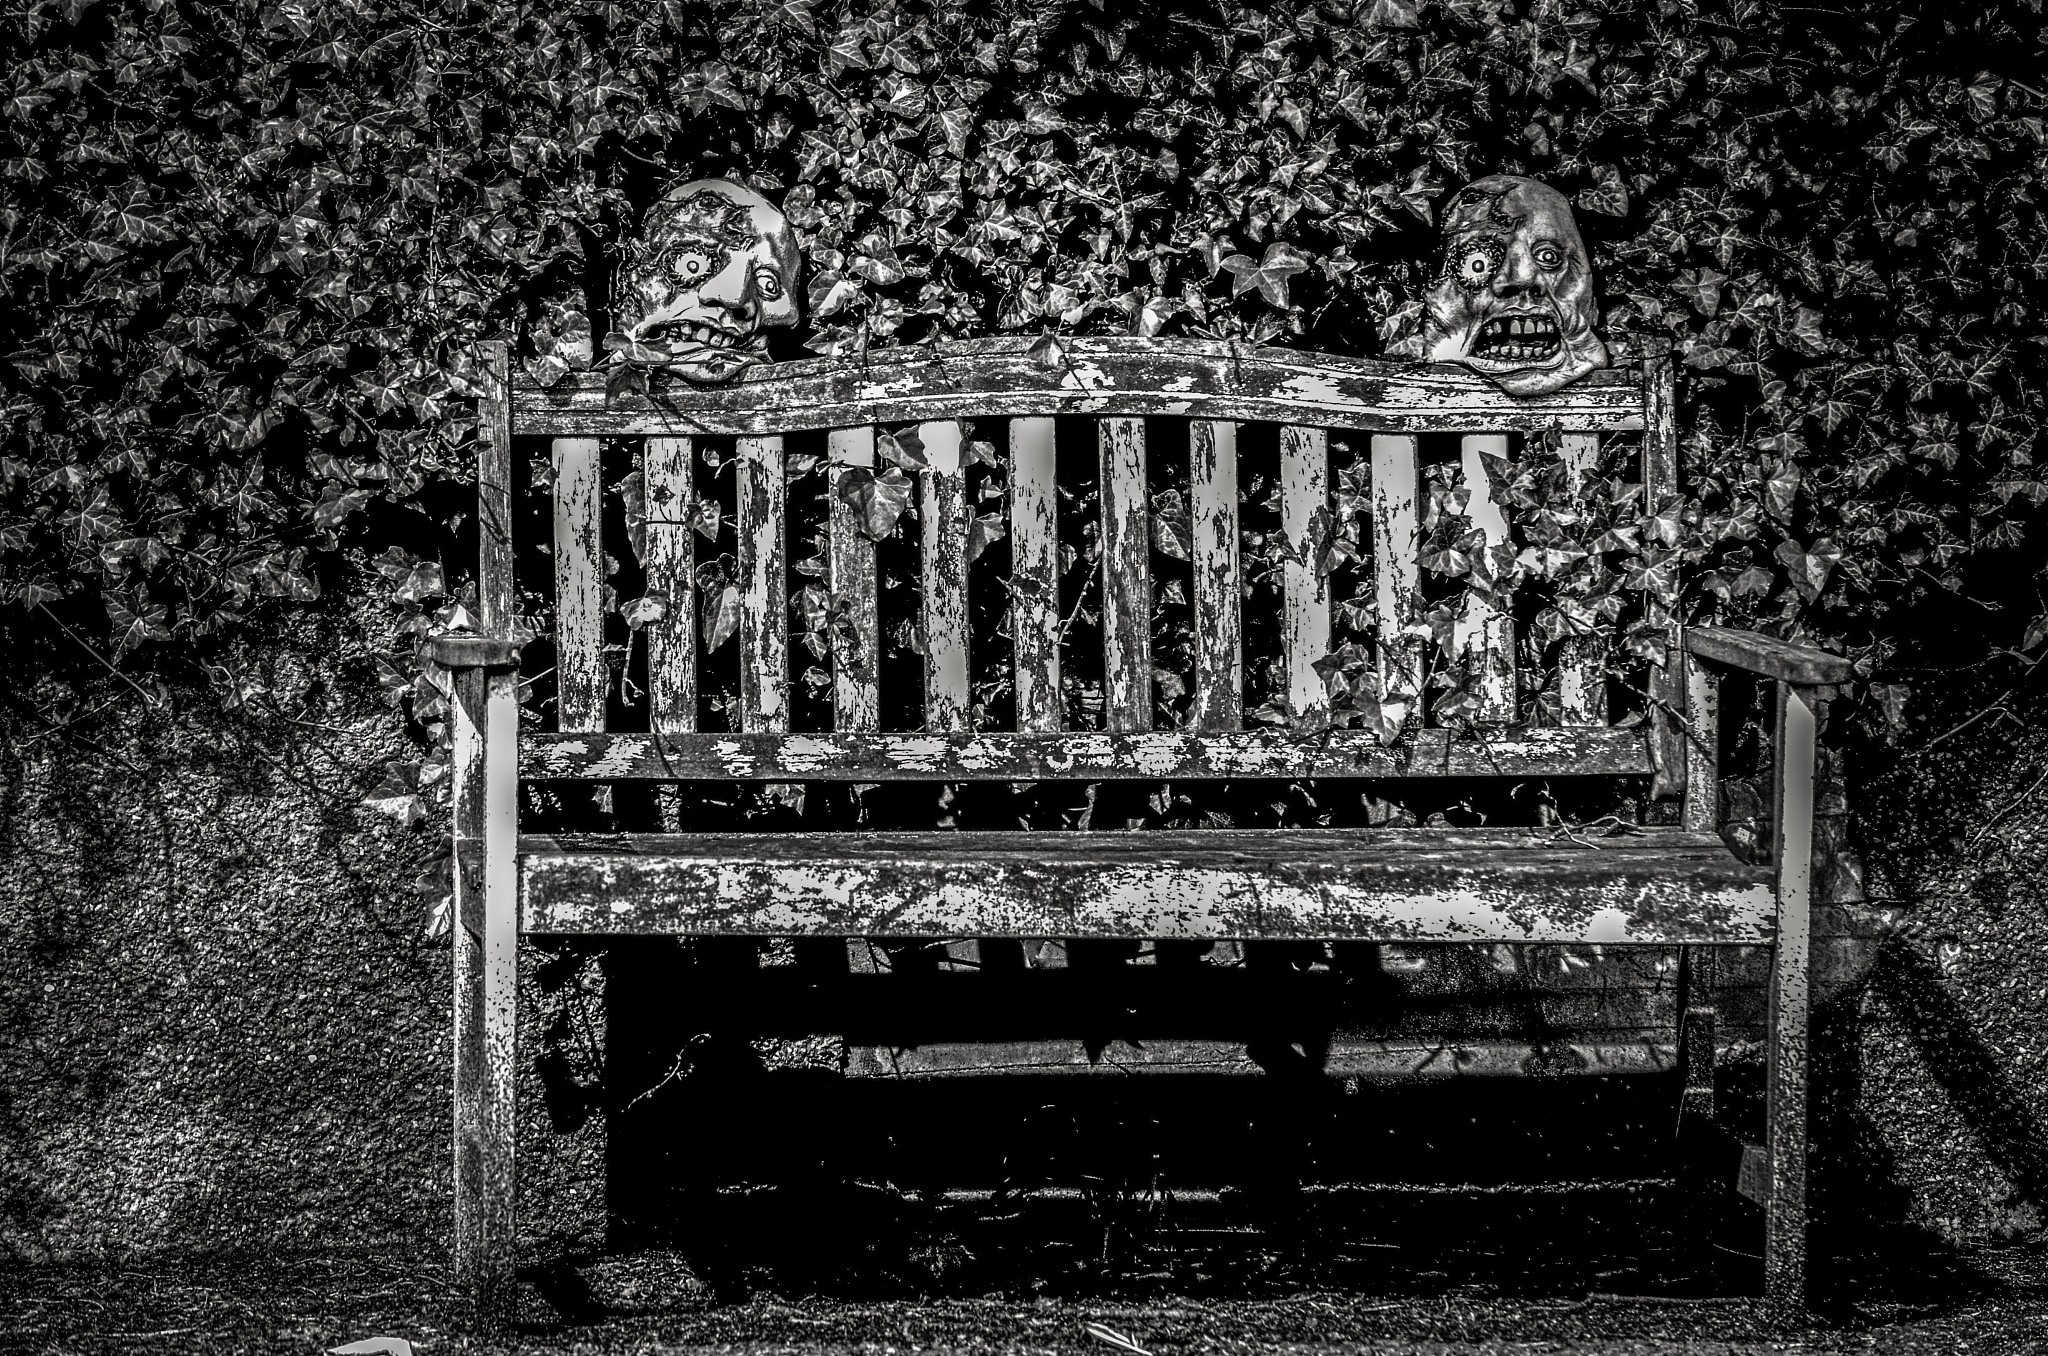 Take A Seat? by Ray Clark